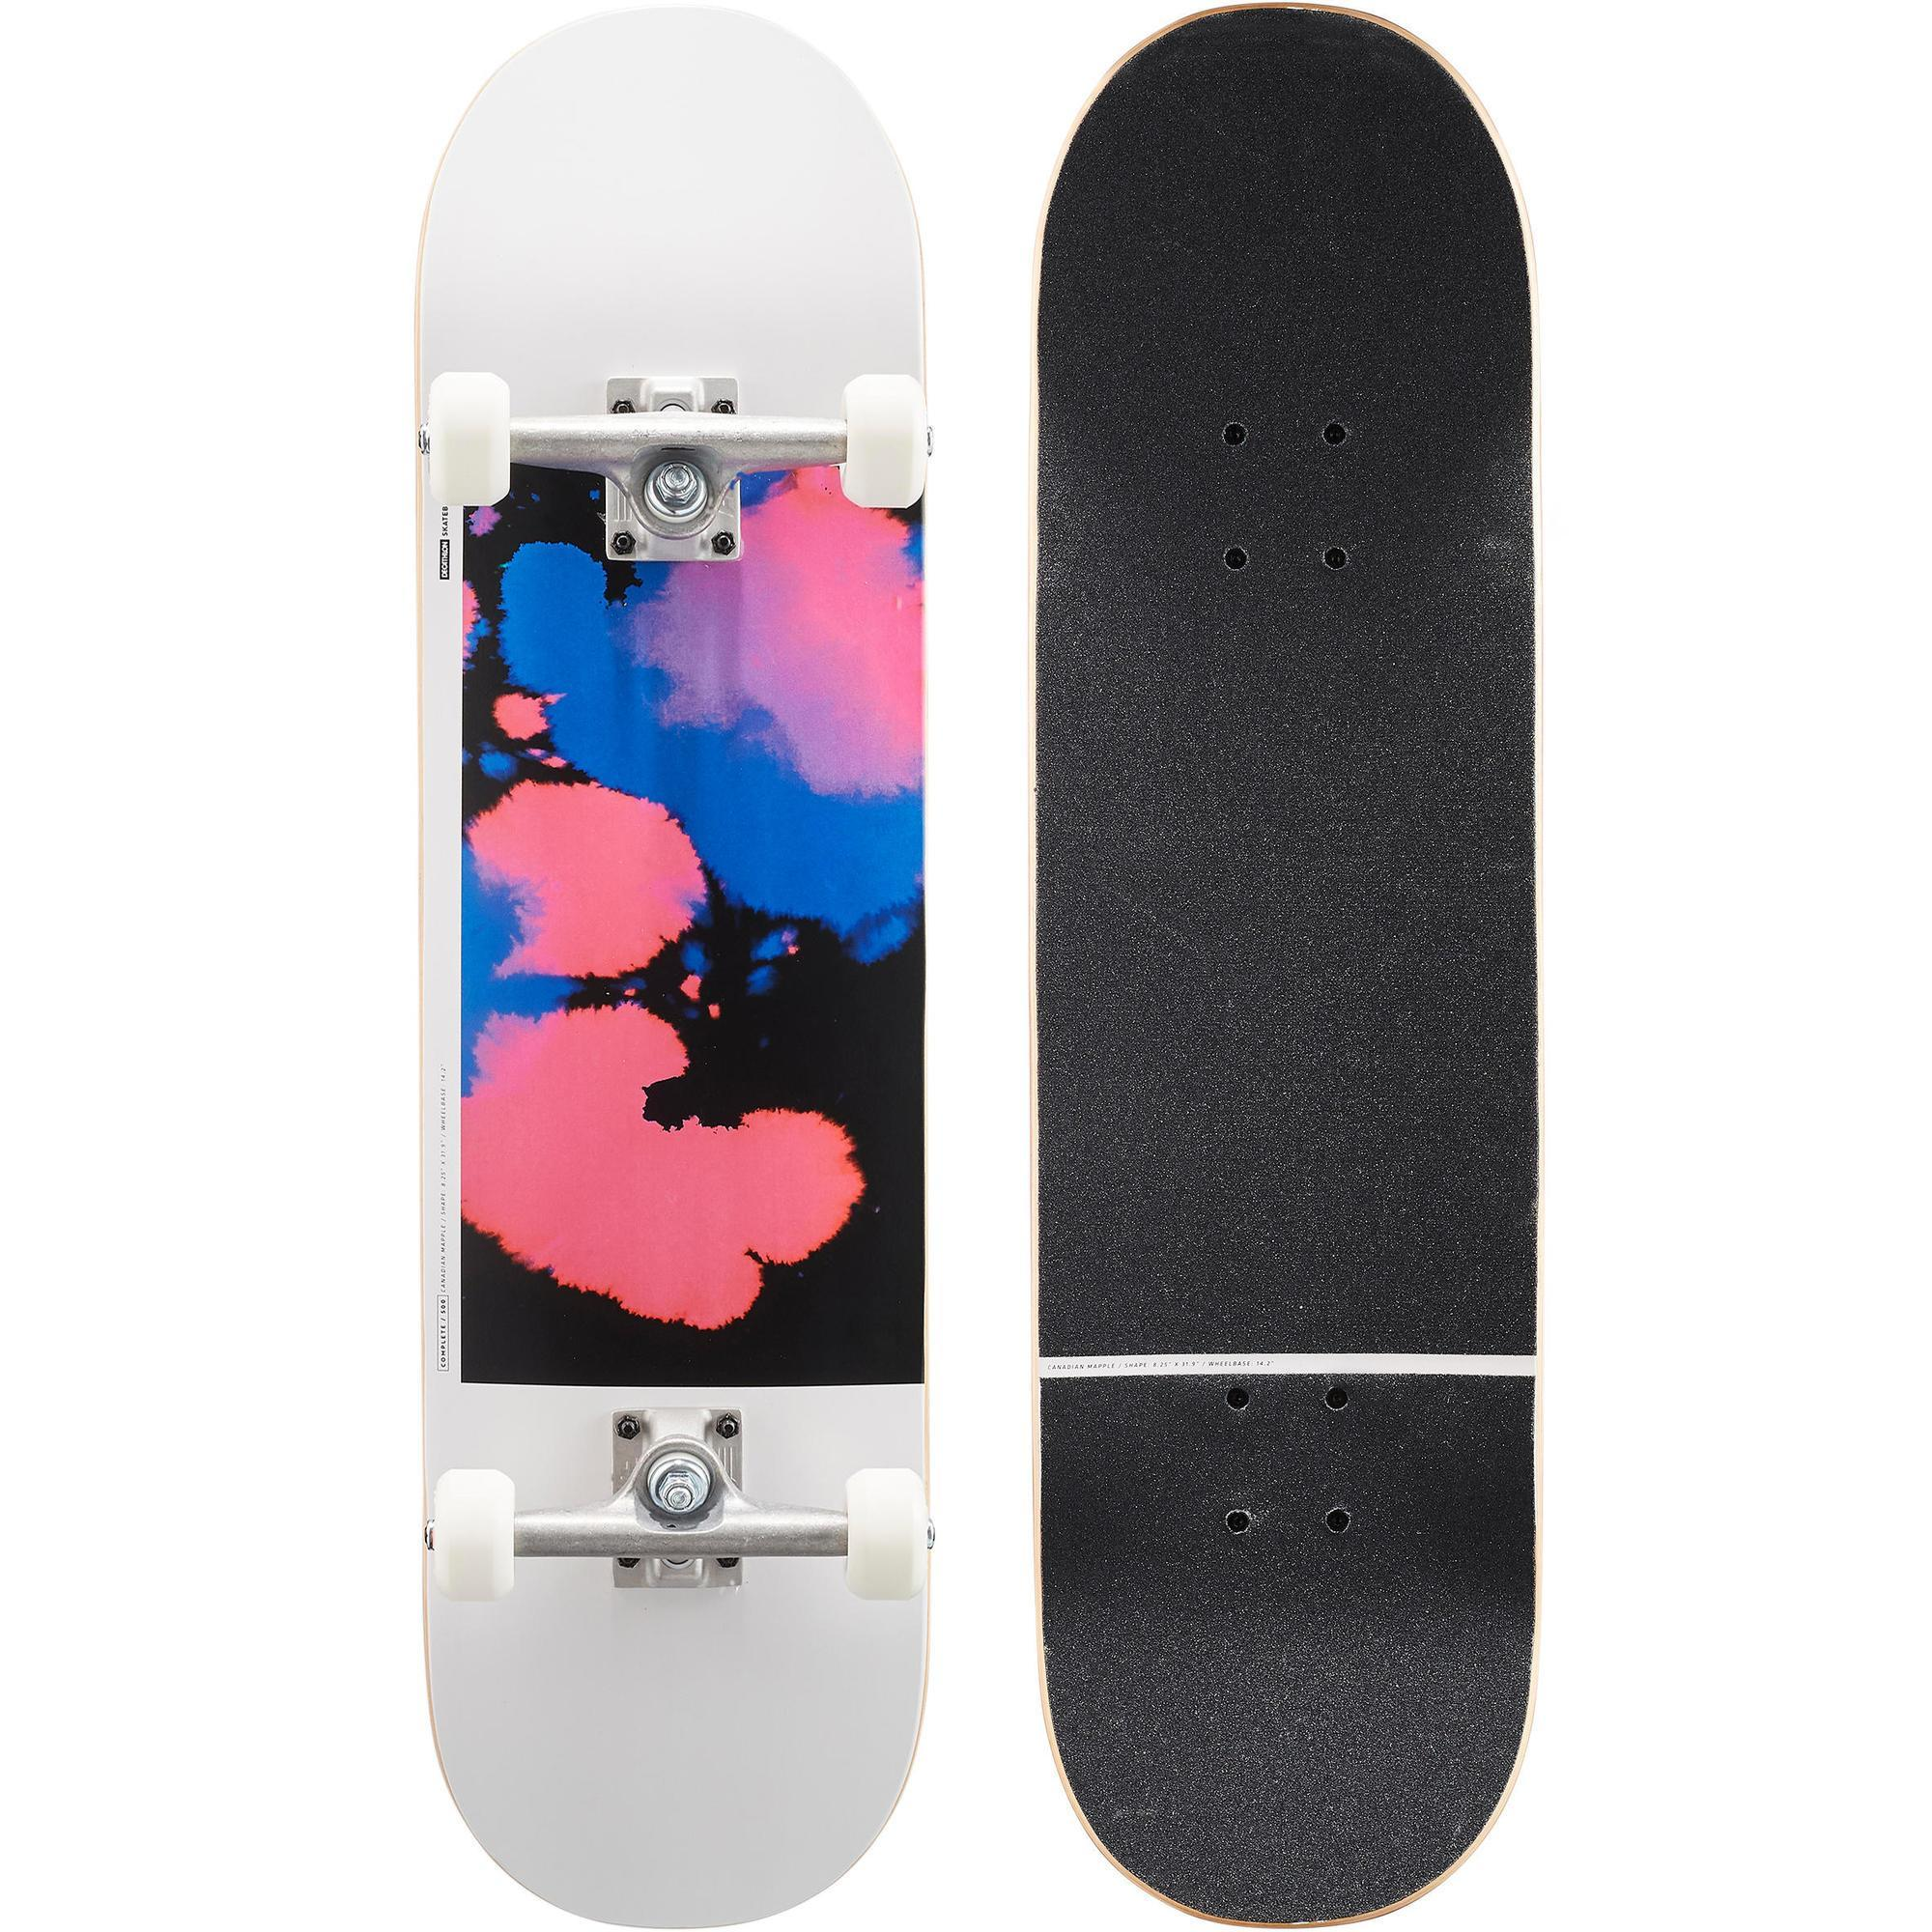 bc2208f456b Skateboard COMPLETE 500 Fury paranoid Oxelo